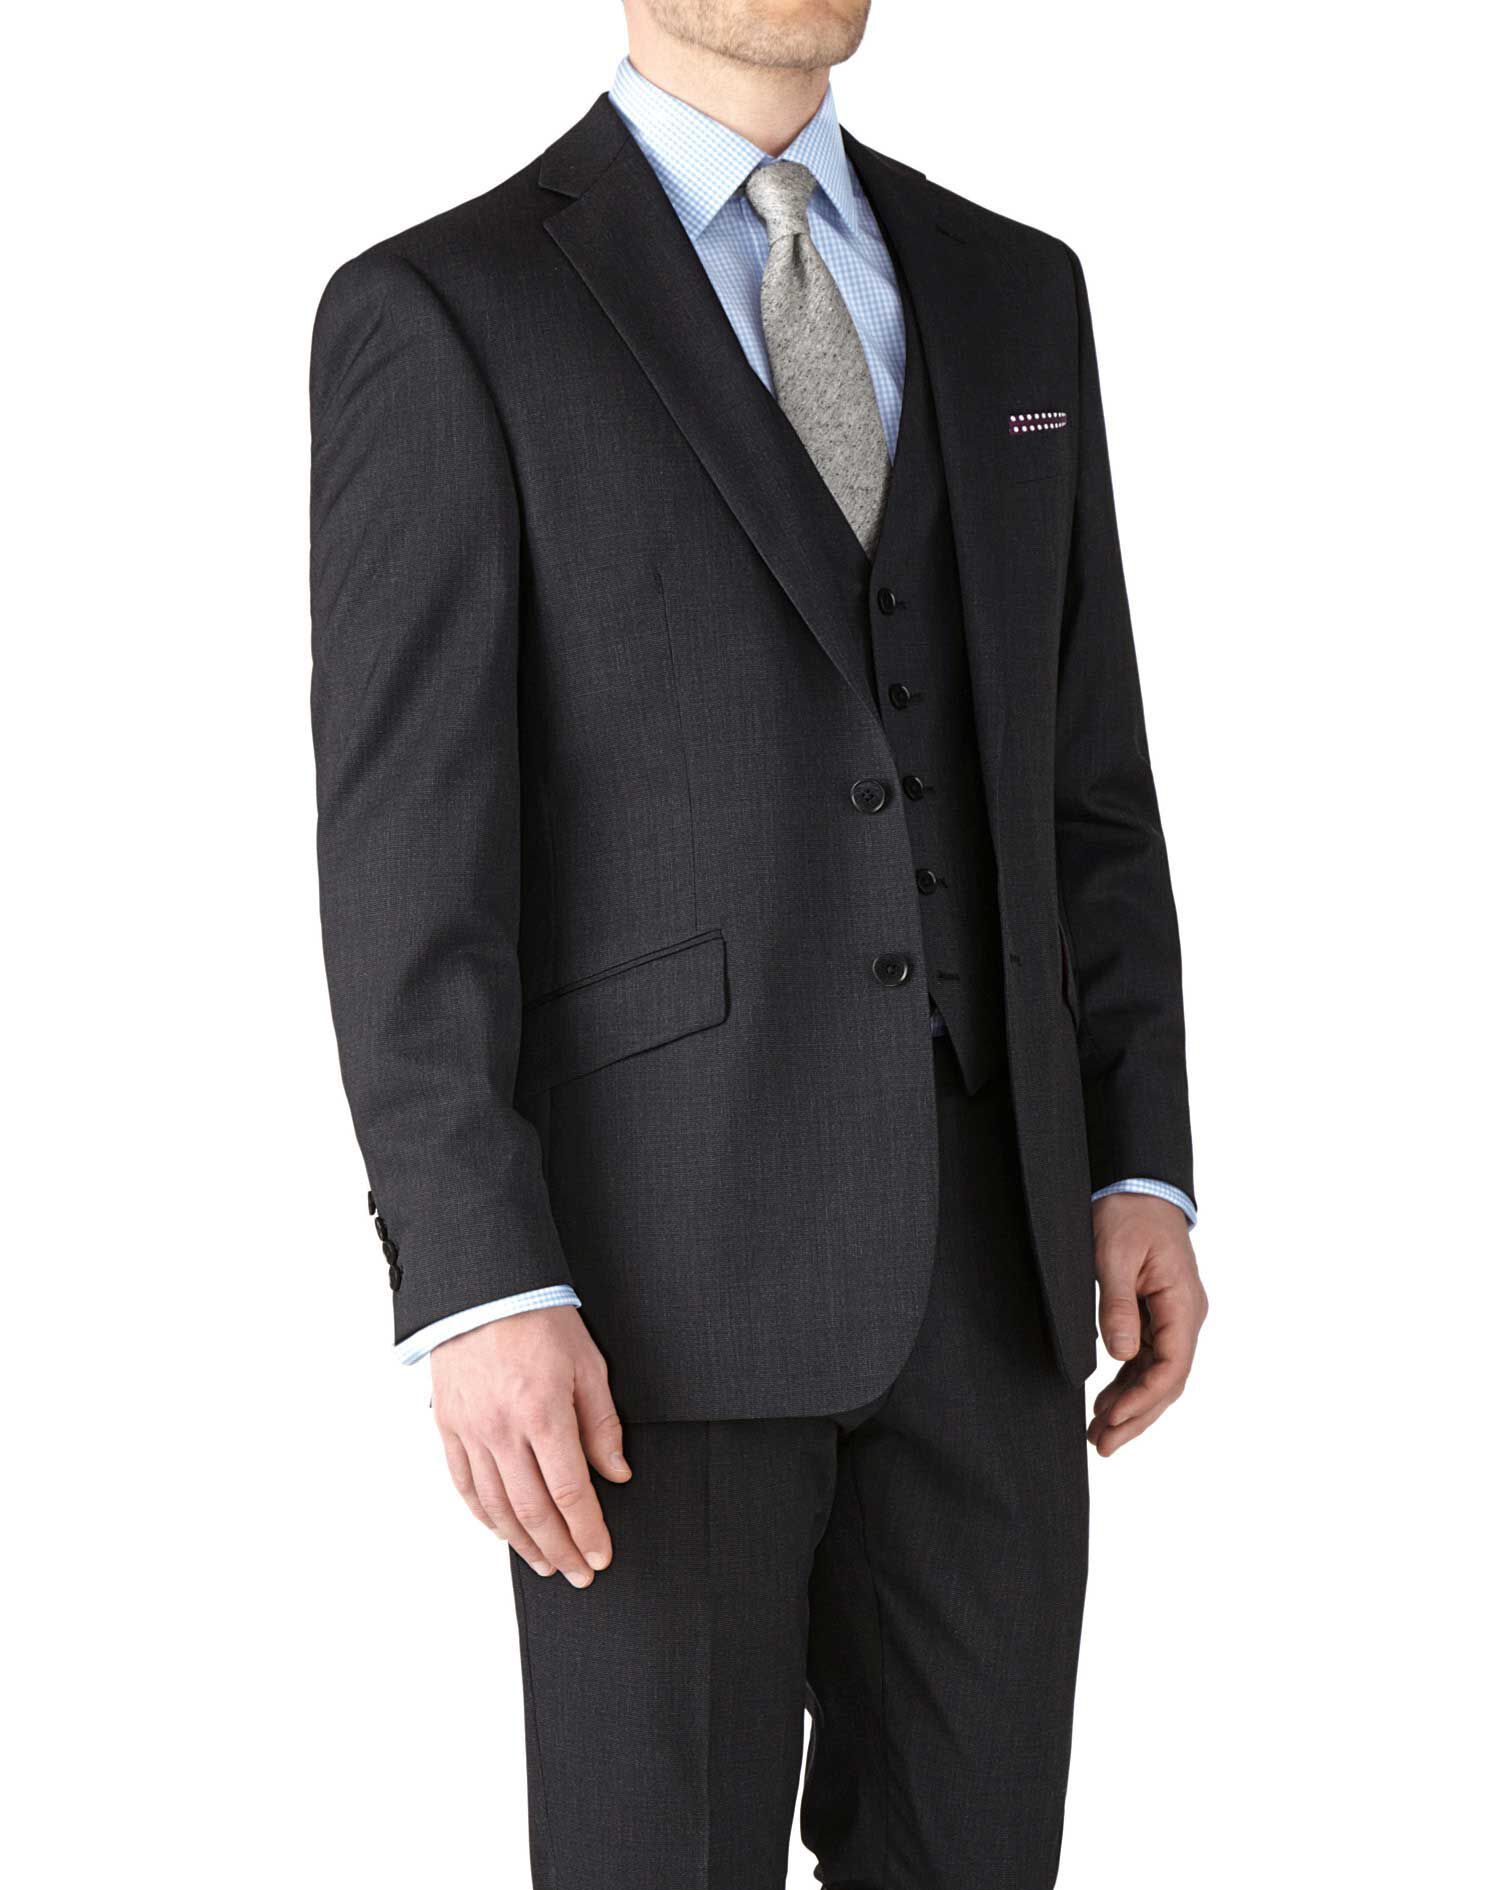 Charcoal Classic Fit End-On-End Business Suit Wool Jacket Size 42 by Charles Tyrwhitt